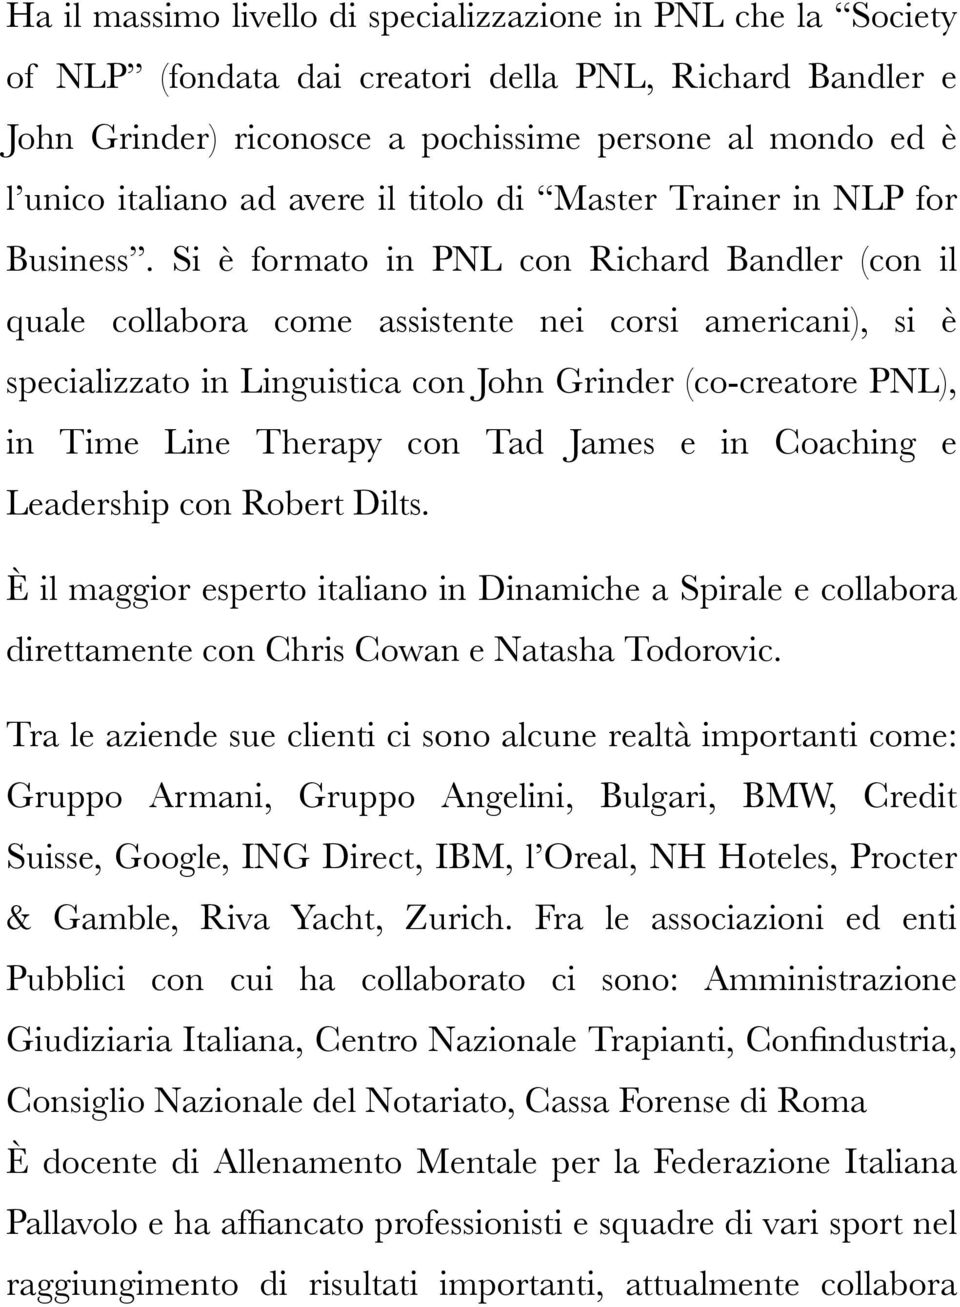 Si è formato in PNL con Richard Bandler (con il quale collabora come assistente nei corsi americani), si è specializzato in Linguistica con John Grinder (co-creatore PNL), in Time Line Therapy con